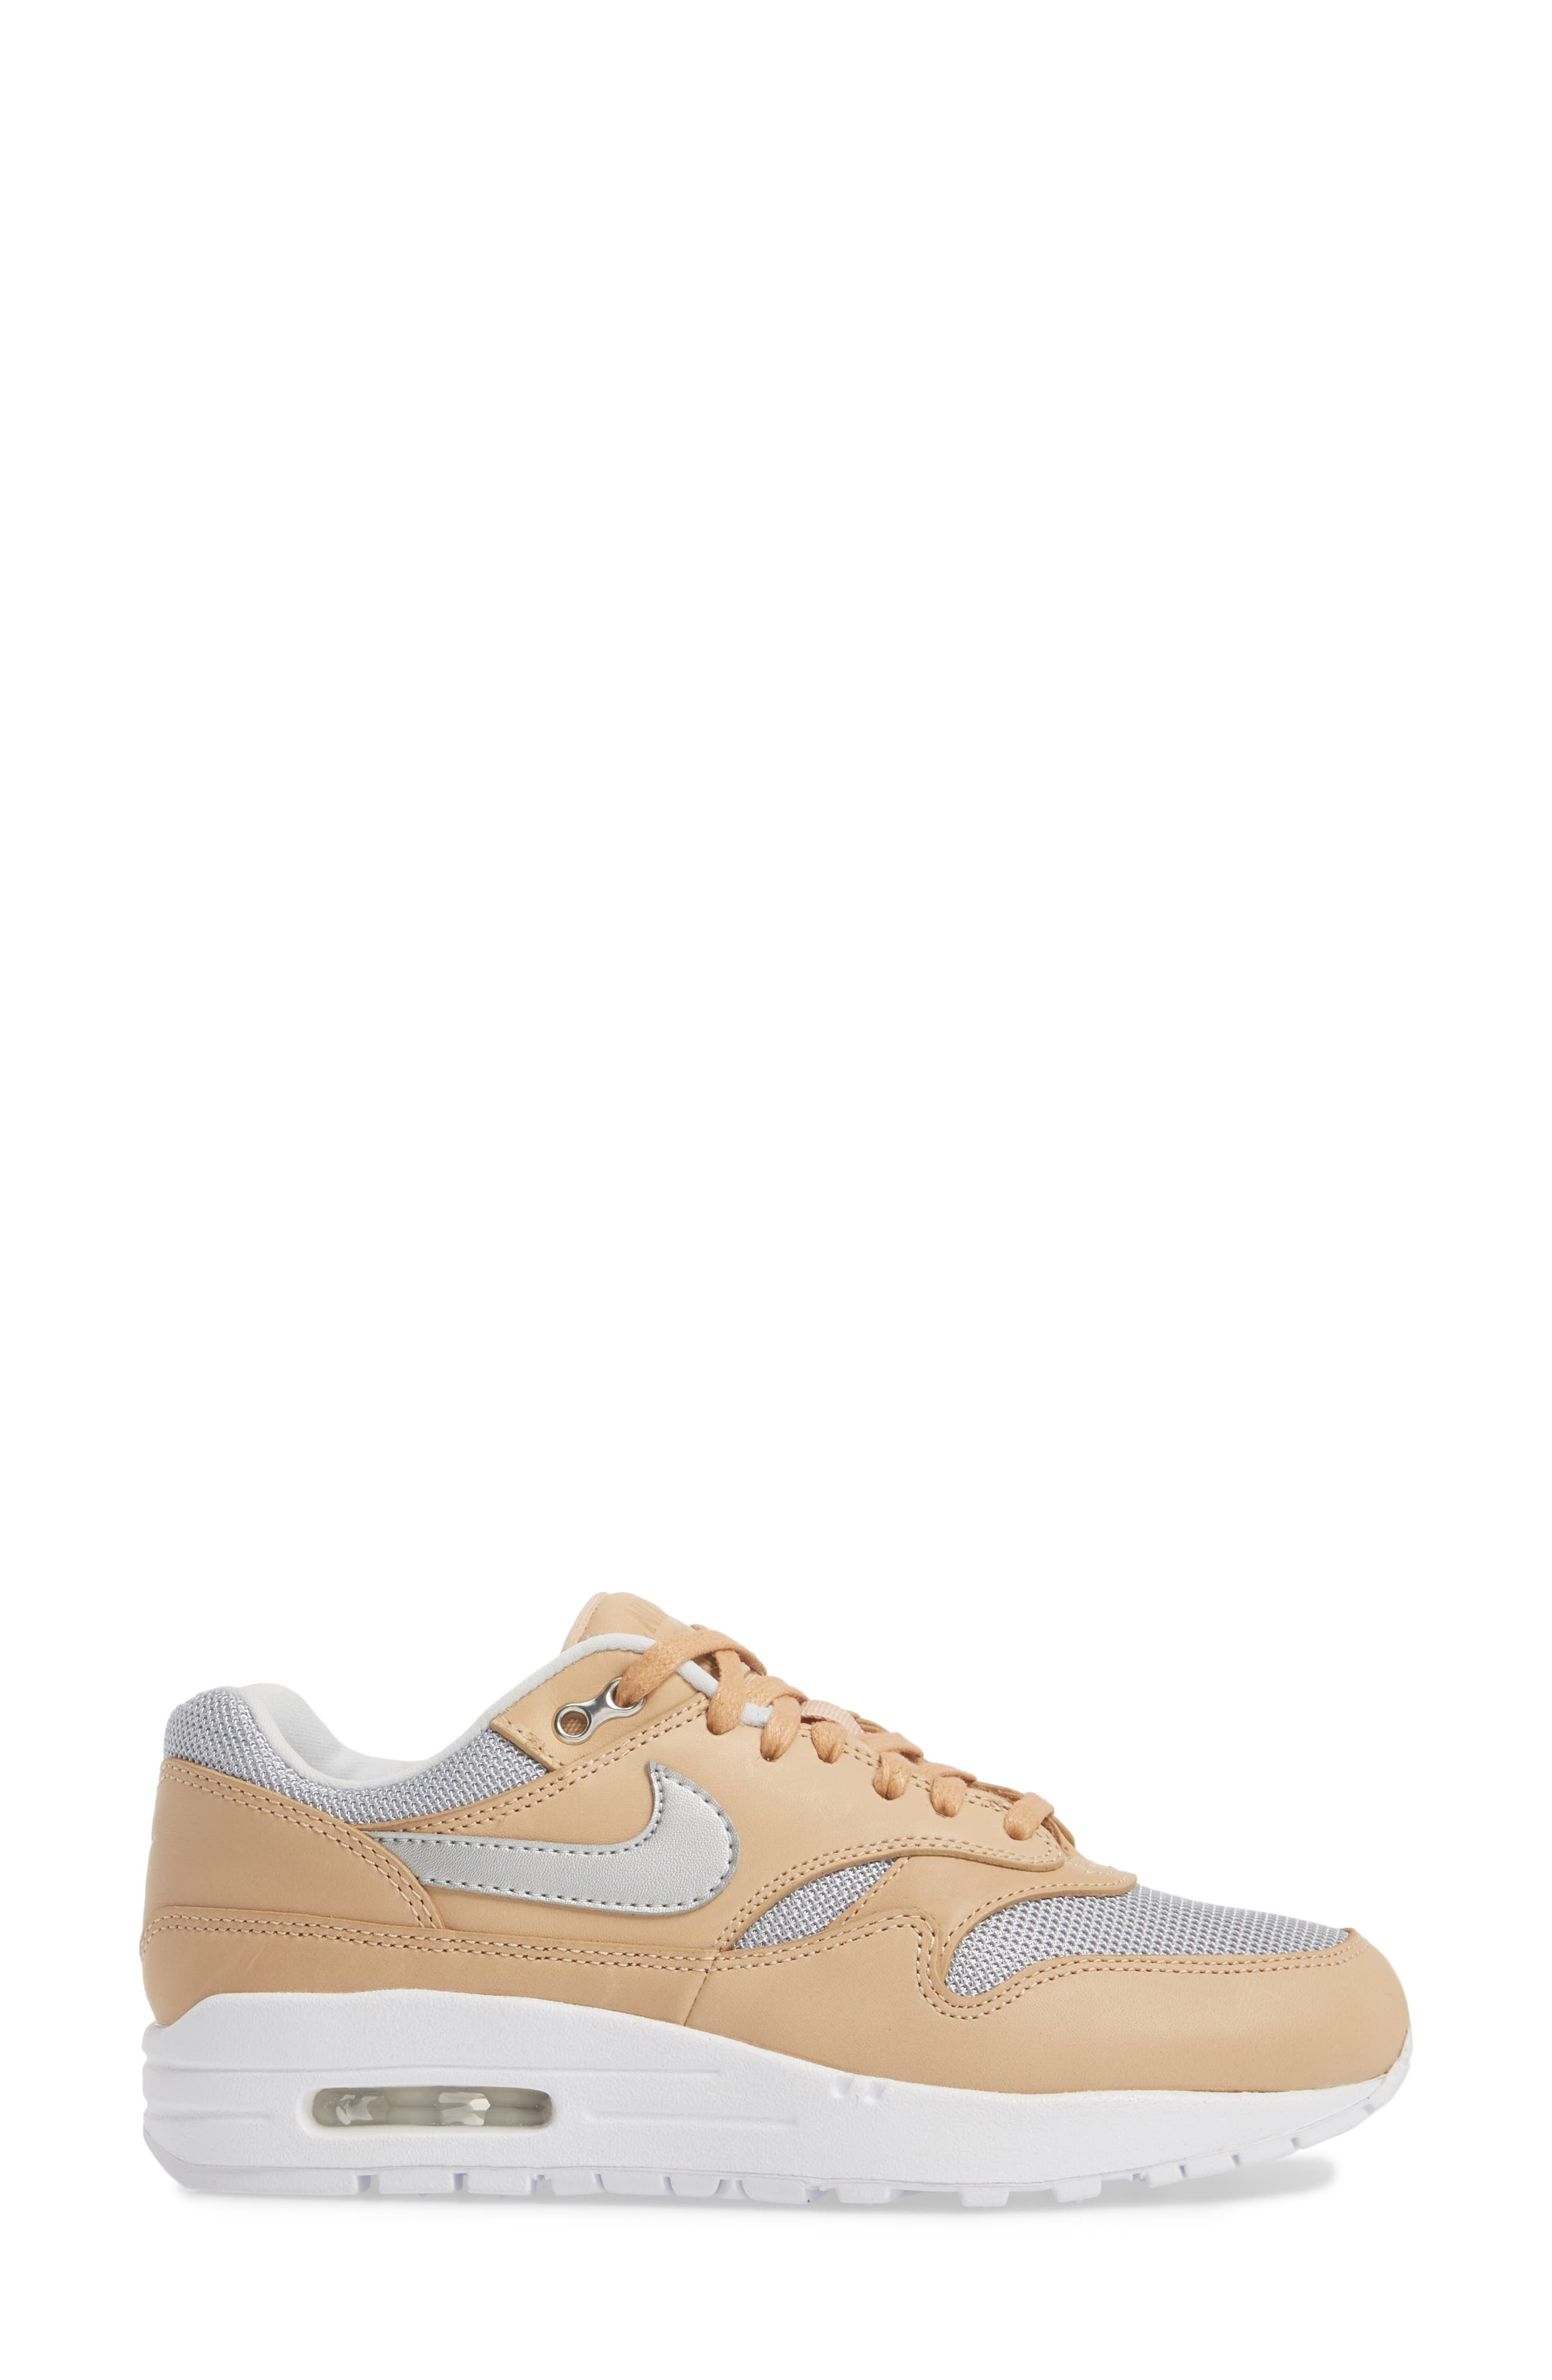 Air Max 1 SE Premium Sneaker,                             Alternate thumbnail 3, color,                             250